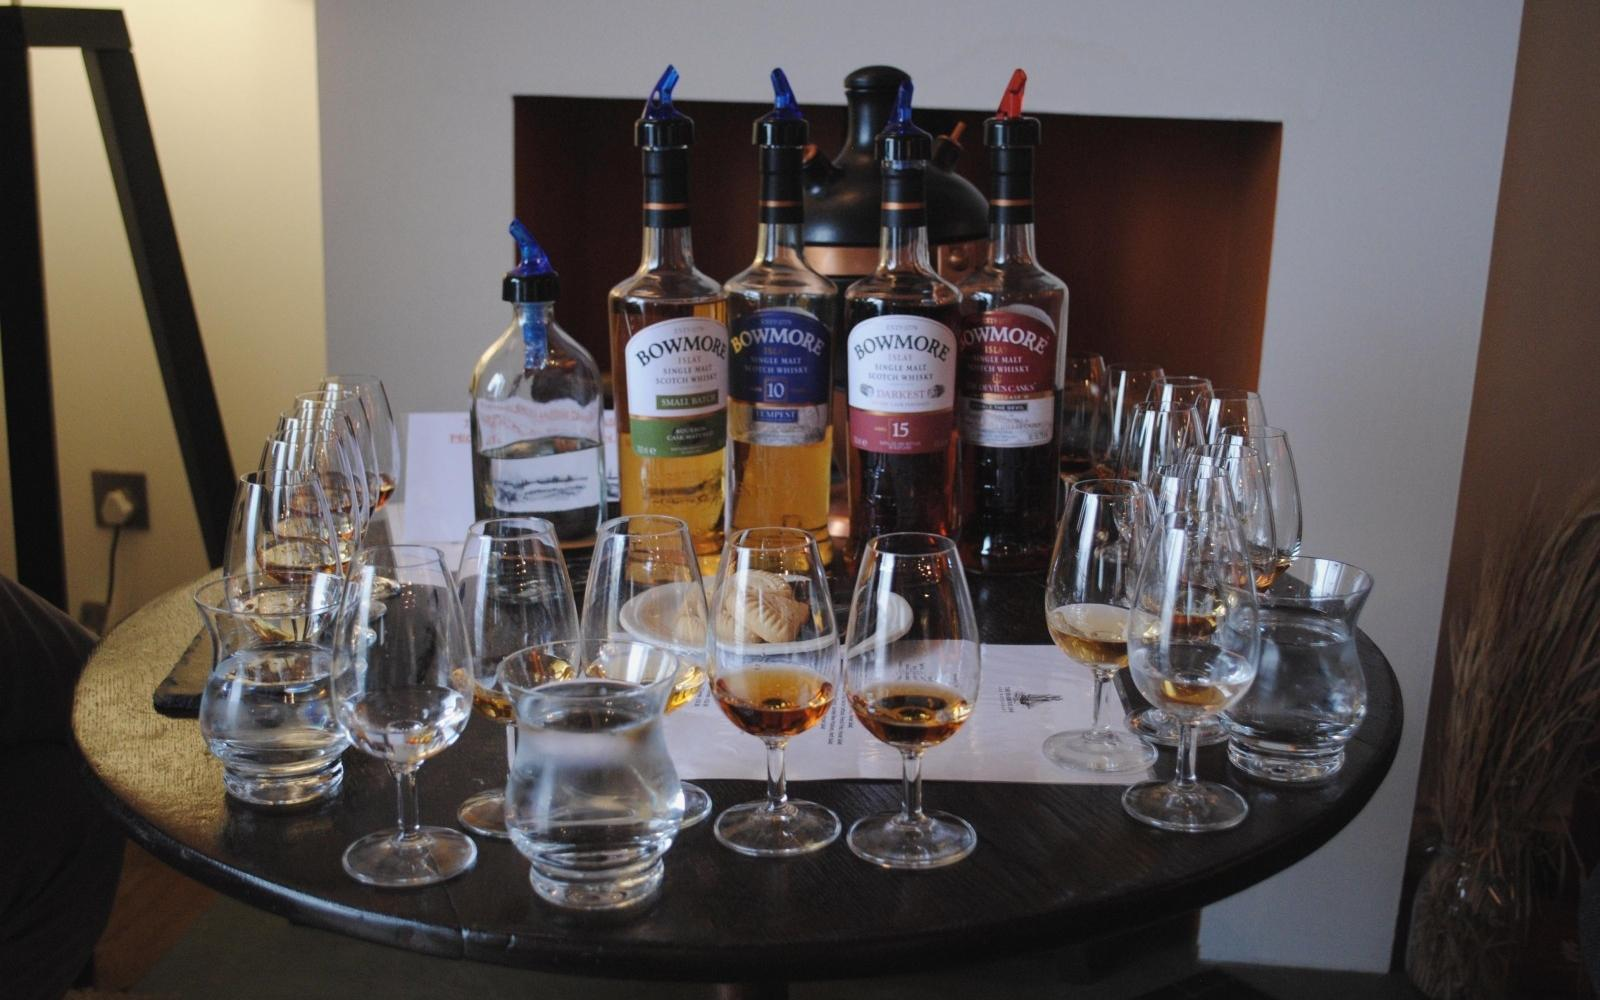 Bowmore Whisky & Chocolate pairing